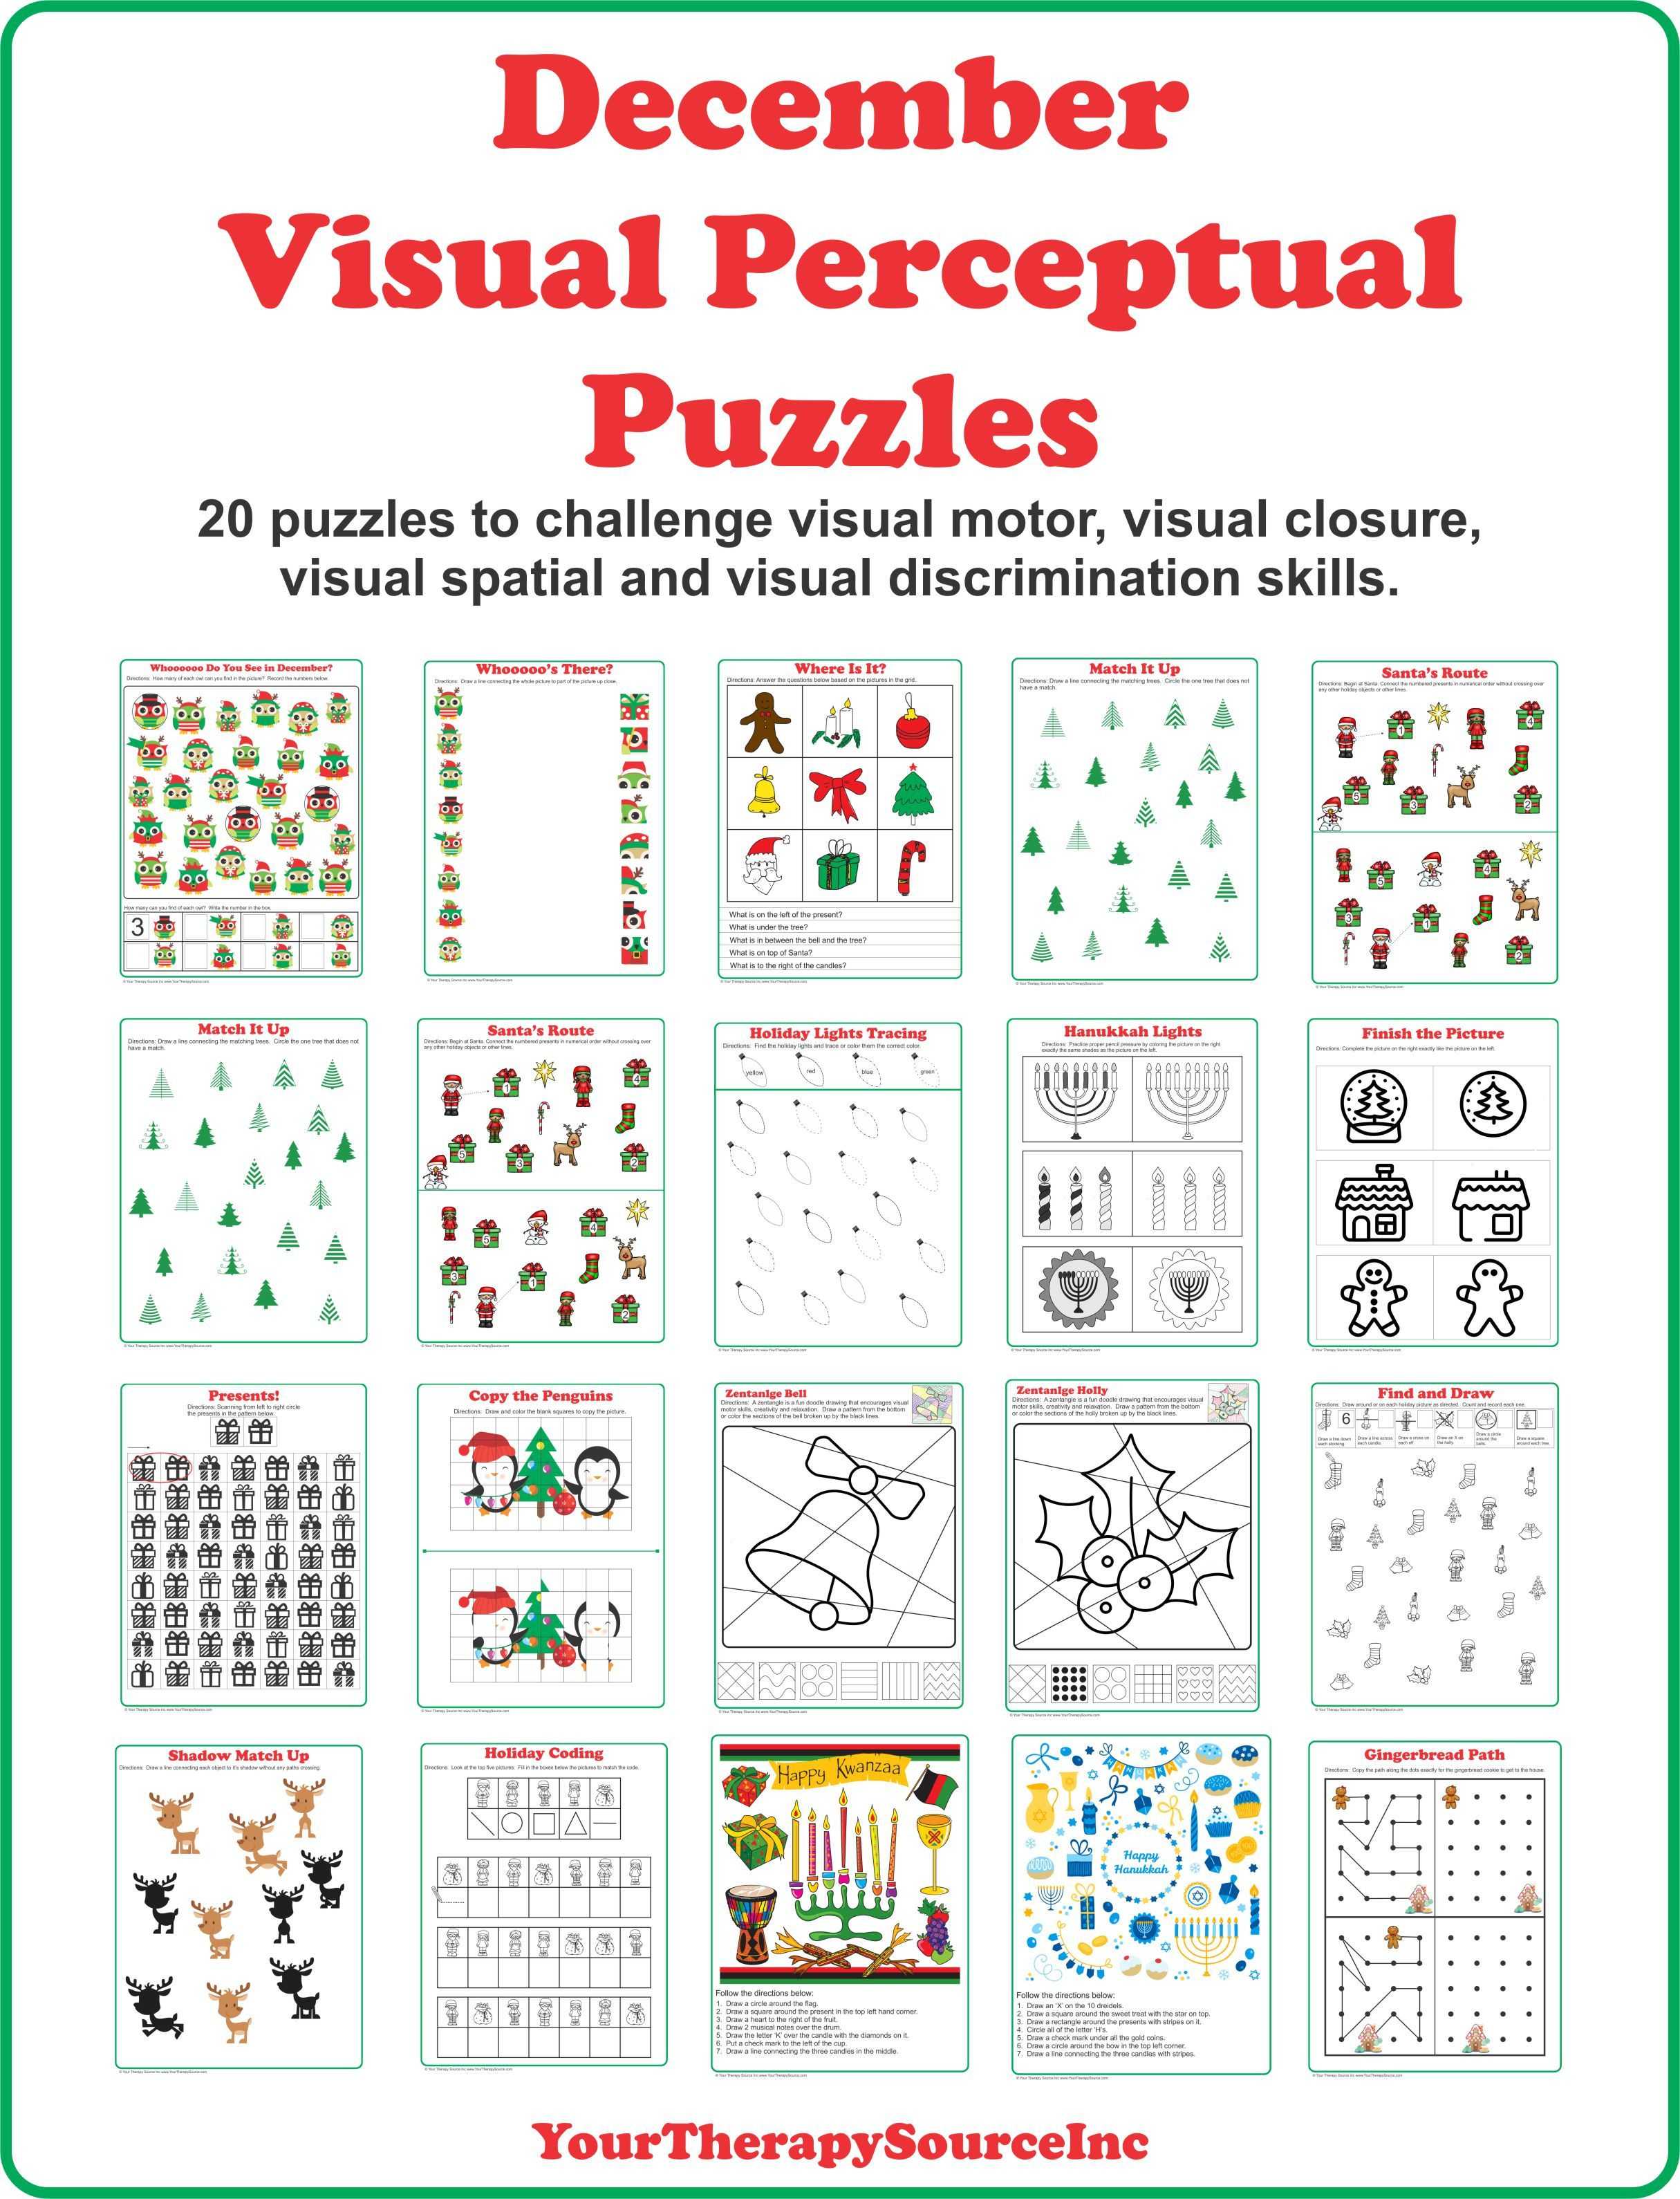 December Visual Perceptual Puzzles With Images